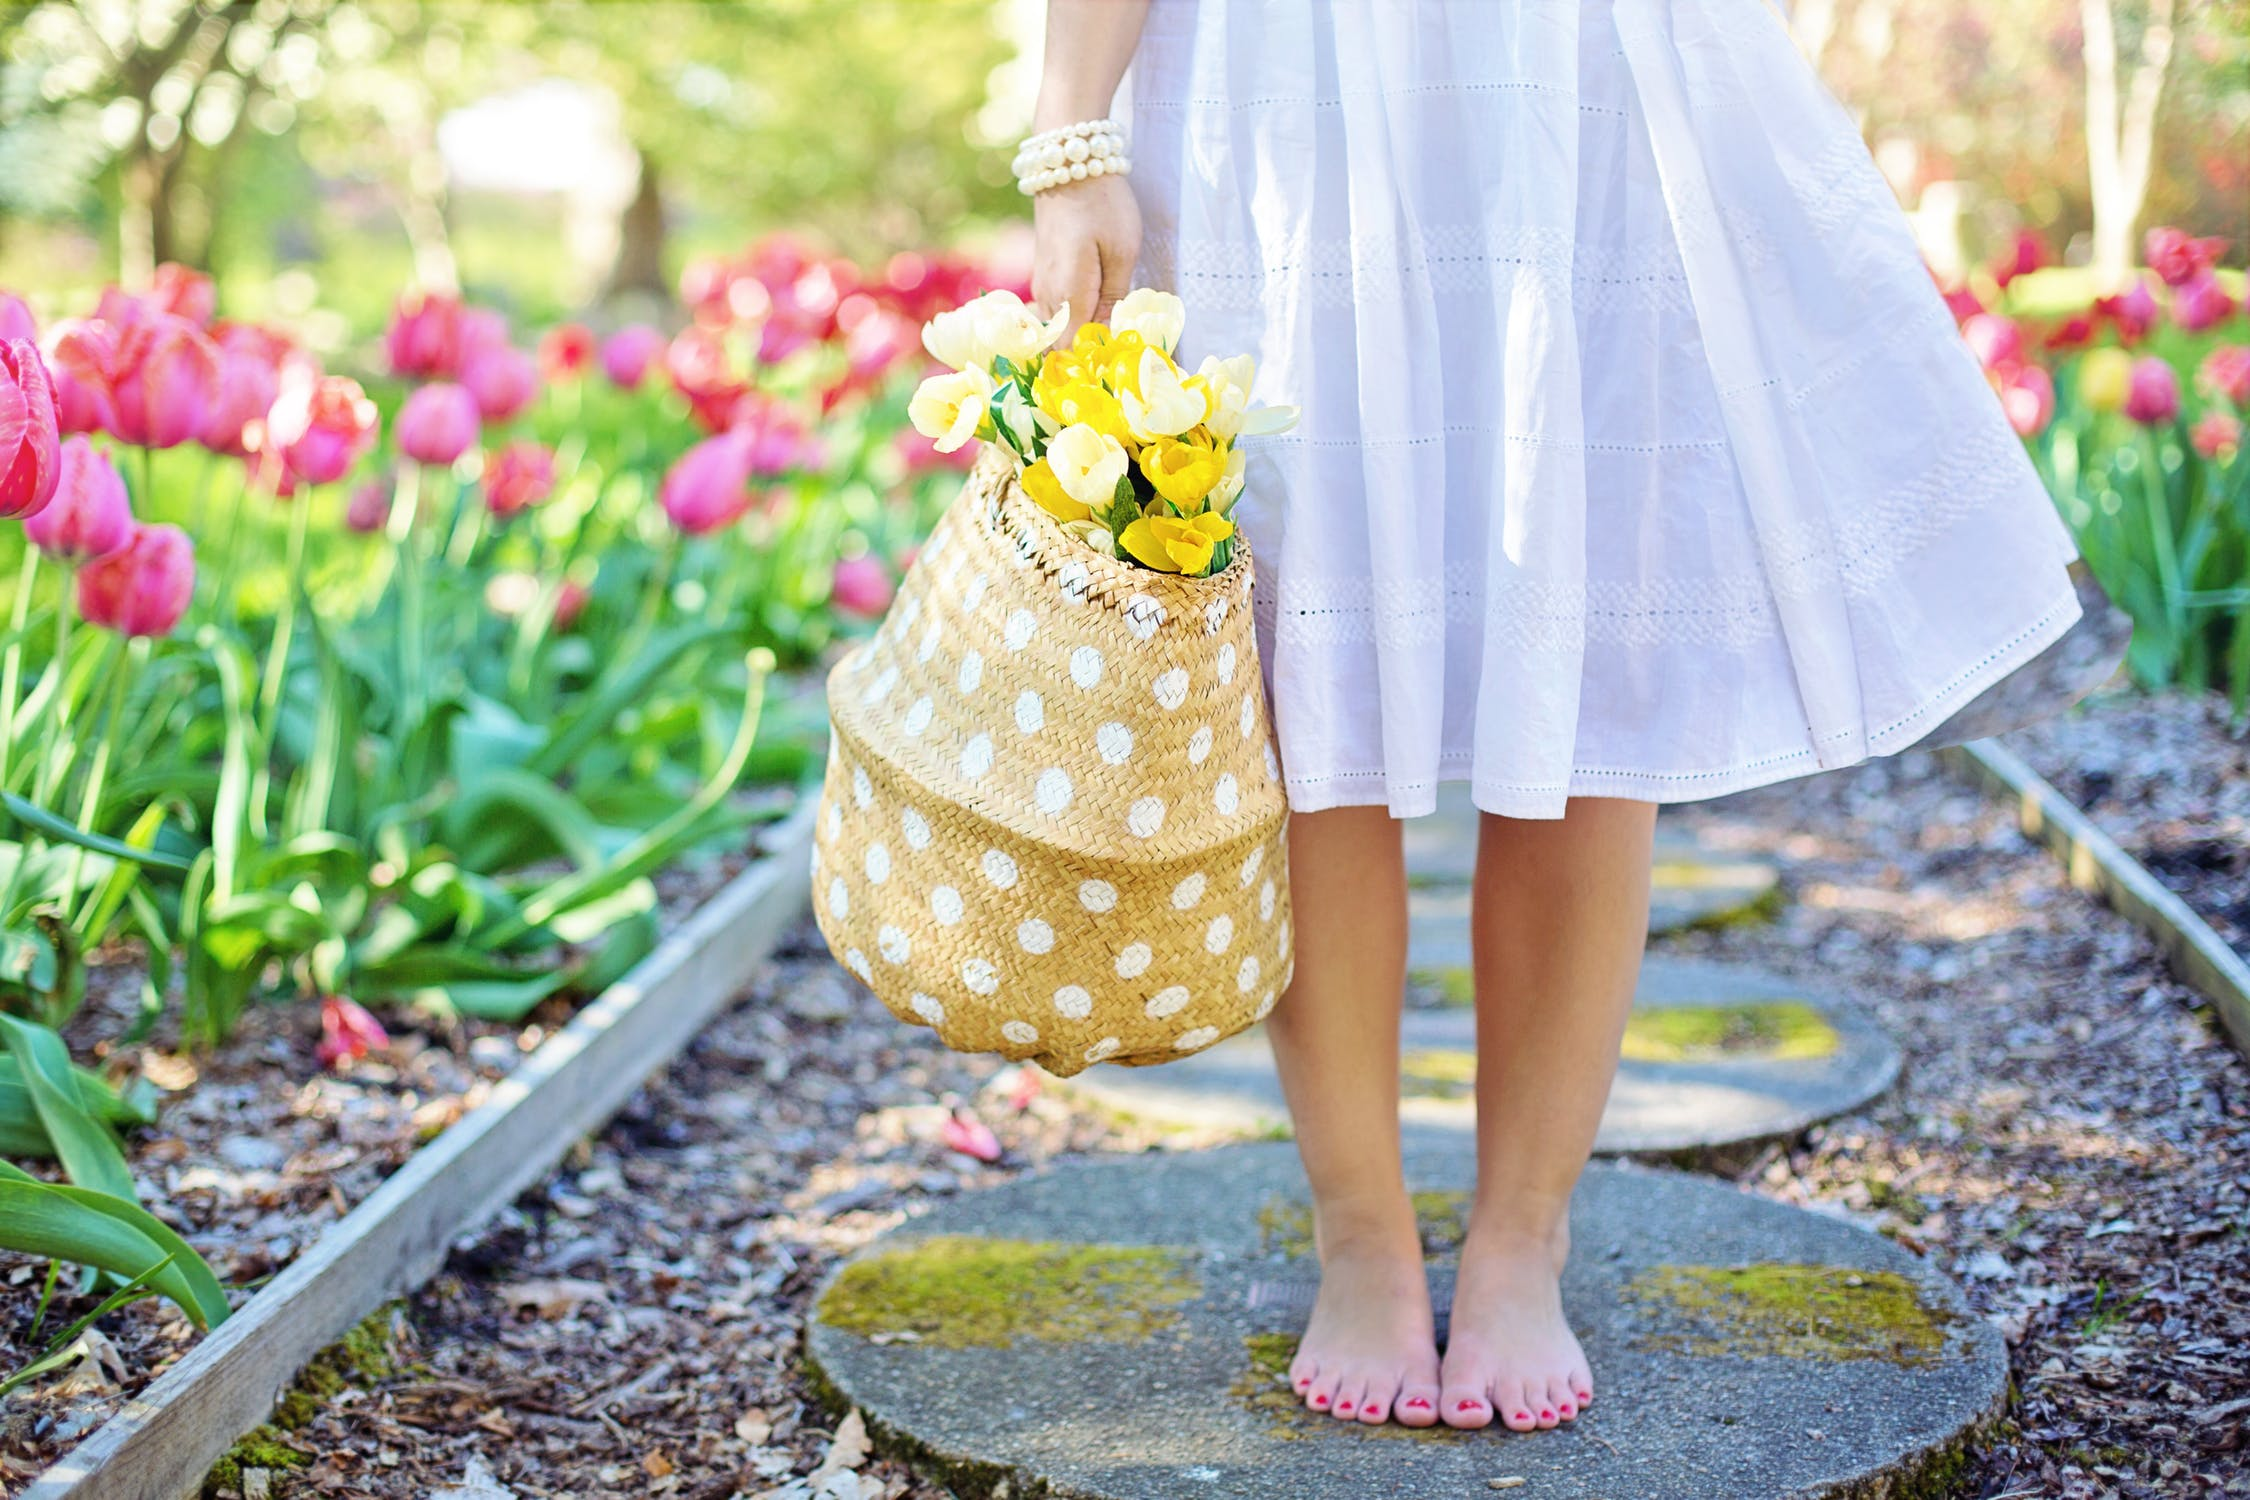 7 Tips for Keeping Your Home and Garden Clean and Eco-Friendly {Guest Blogger}